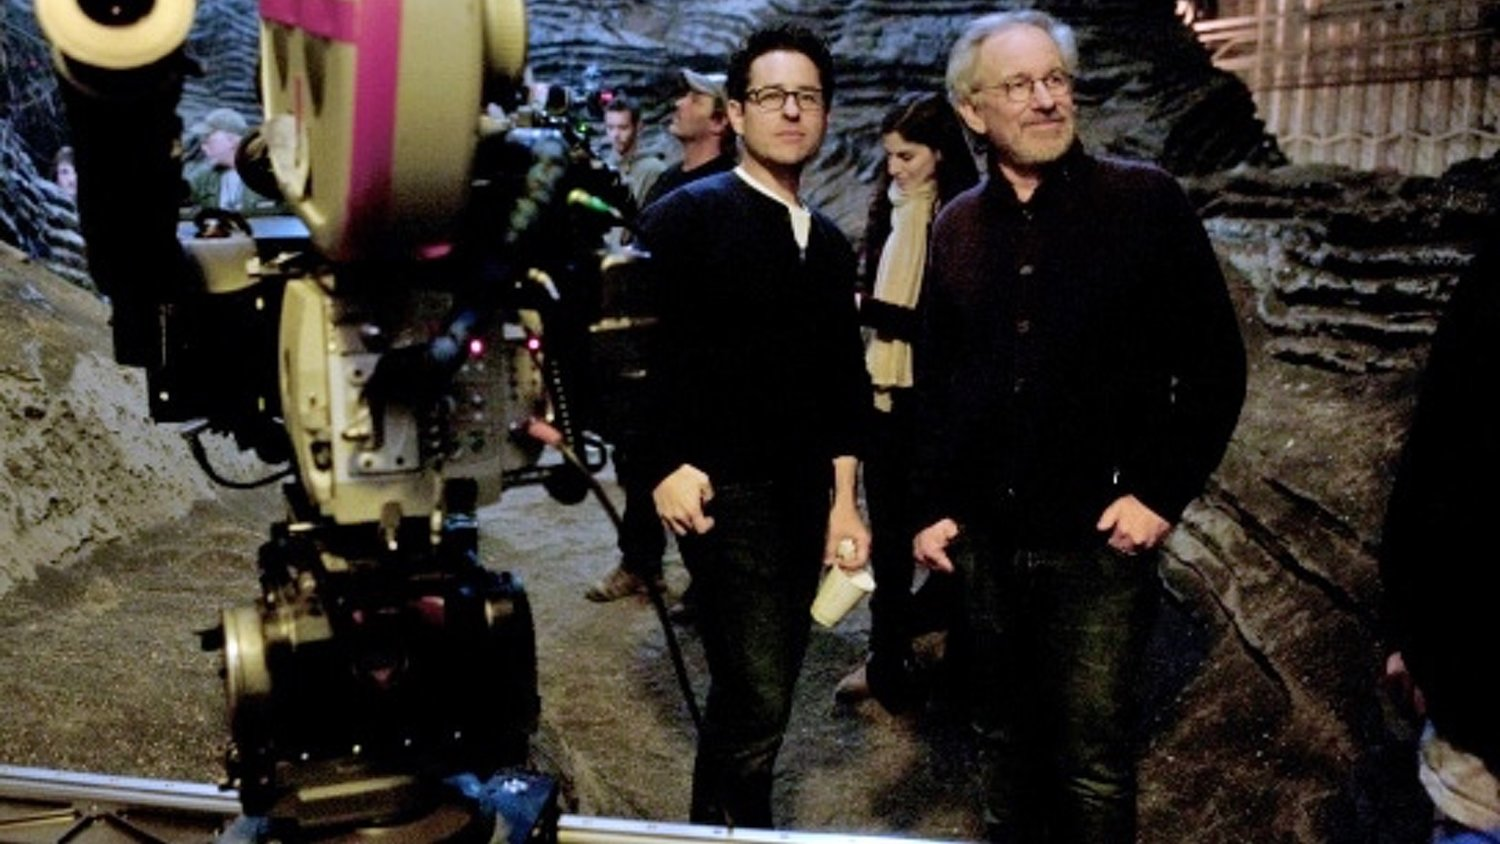 Steven Spielberg and J.J. Abrams Team Up to Develop a Syrian Refugee Drama